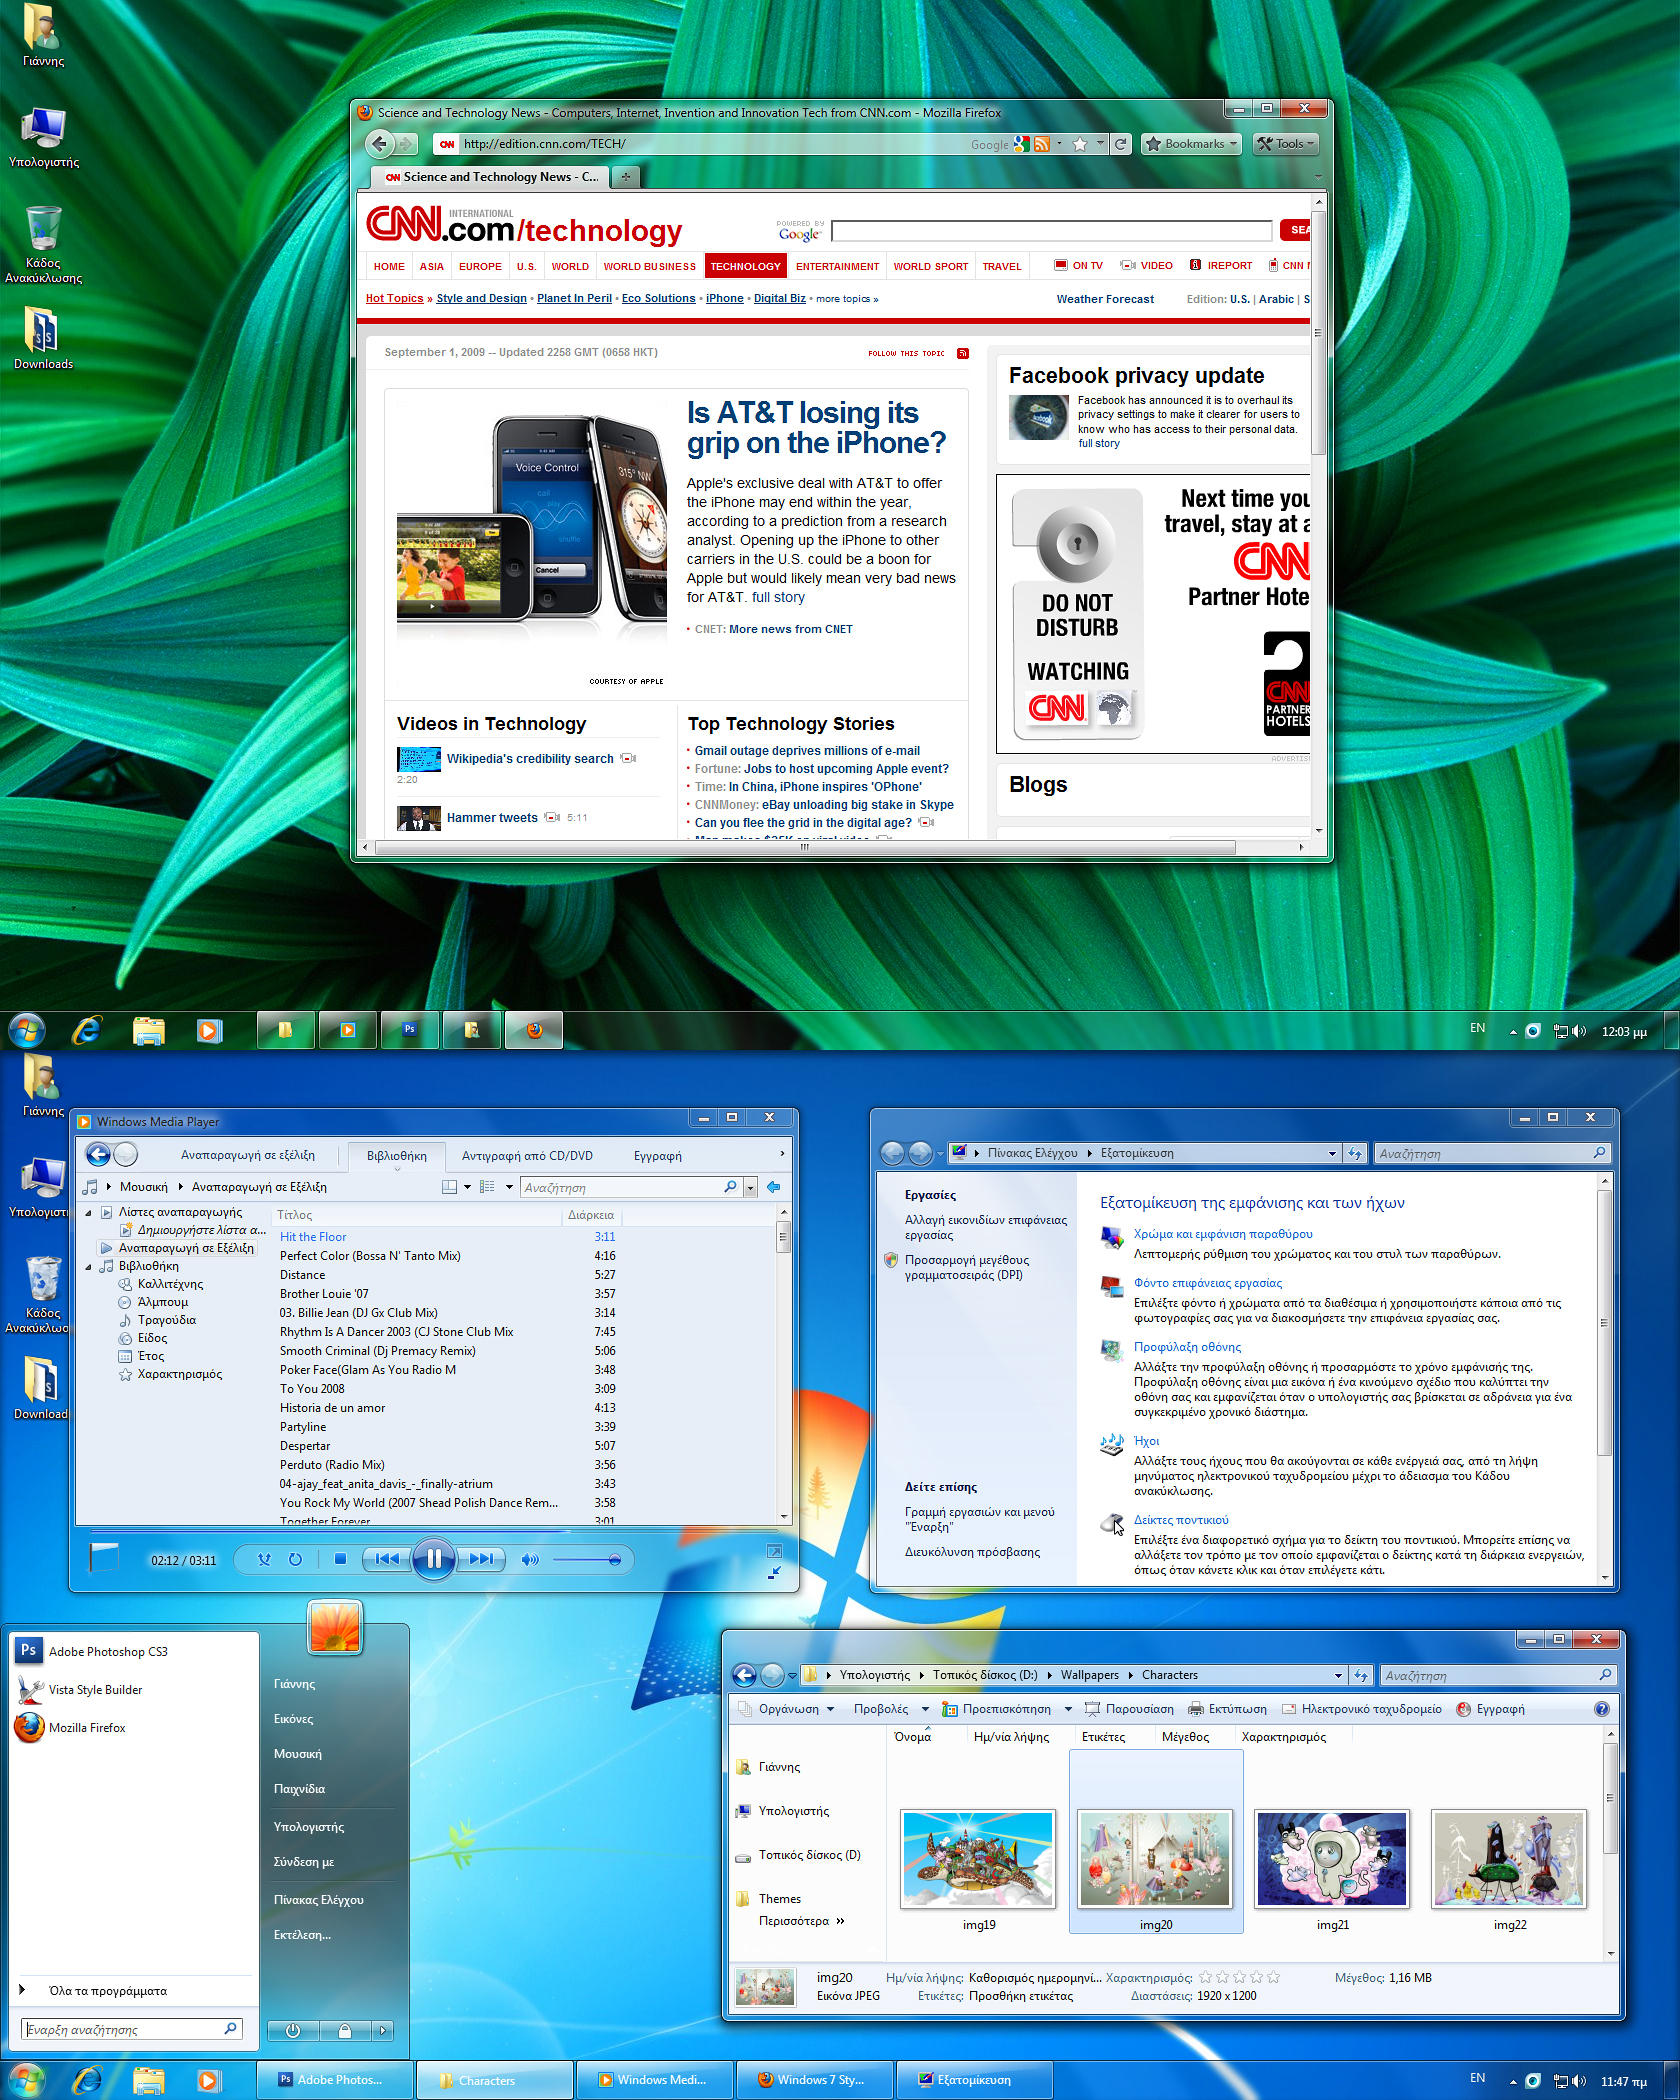 Windows 7 Style for Vista!